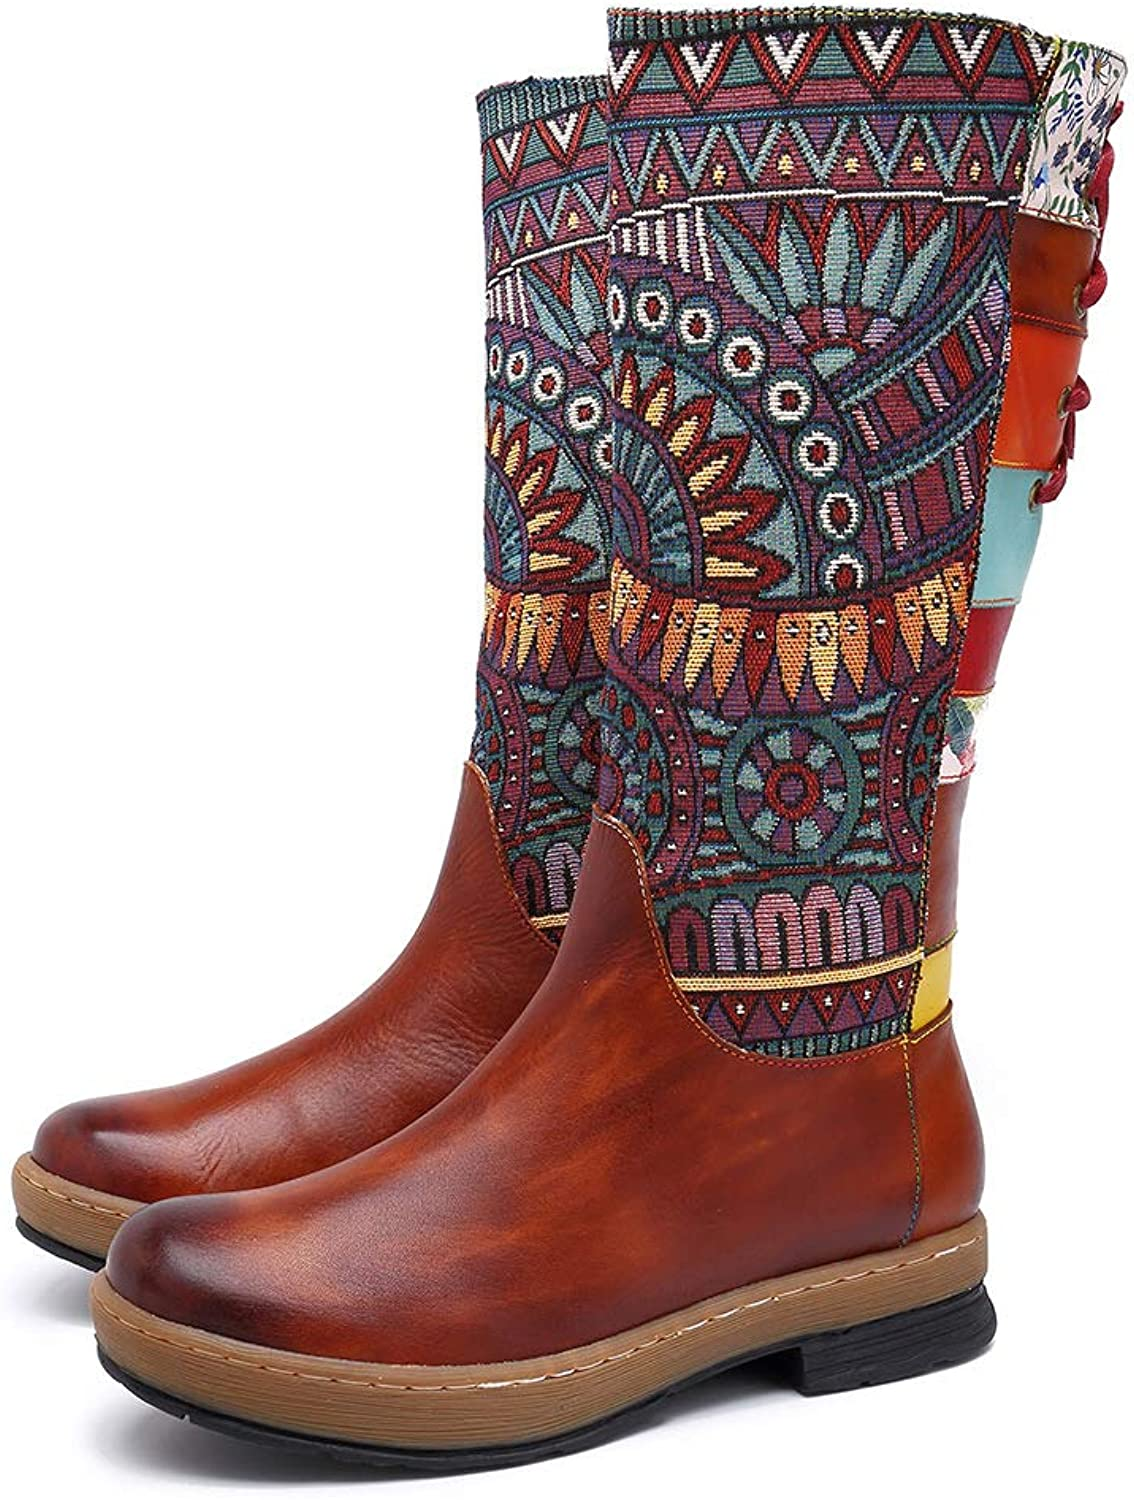 HUIYA Bohemian Style Casual Vintage Ethnic Style Leather Fashion Women's Boots shoes Knee Boots